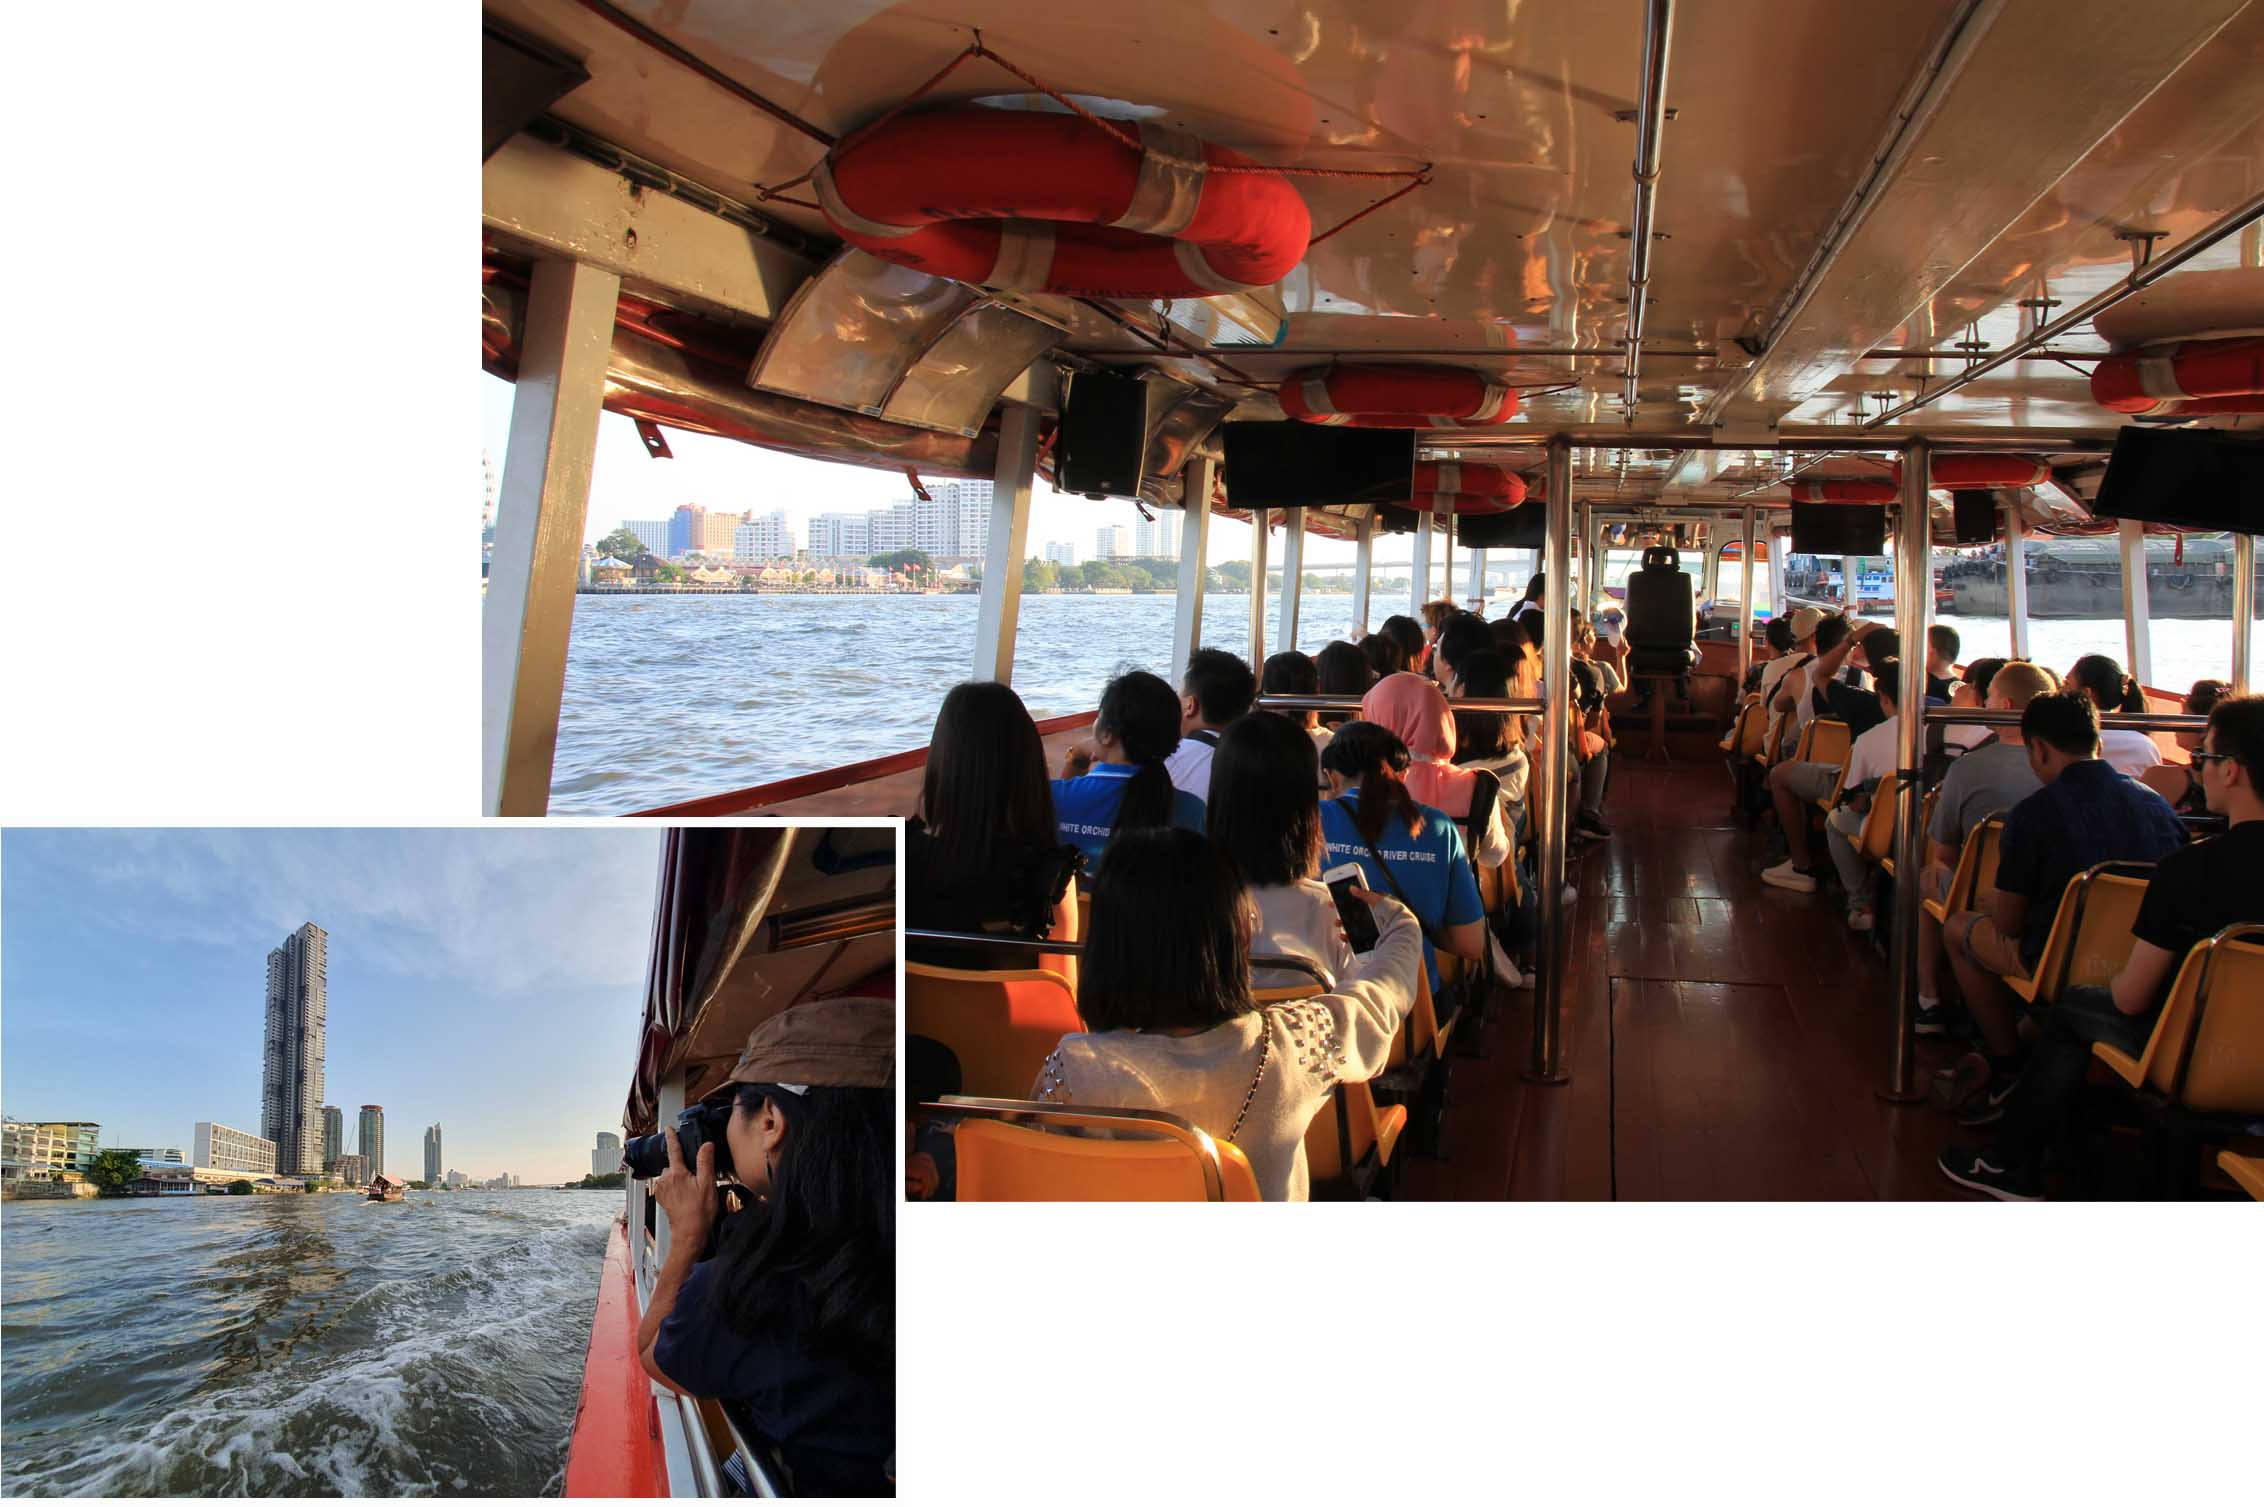 Free shuttle boat ride on the Chao Phraya River